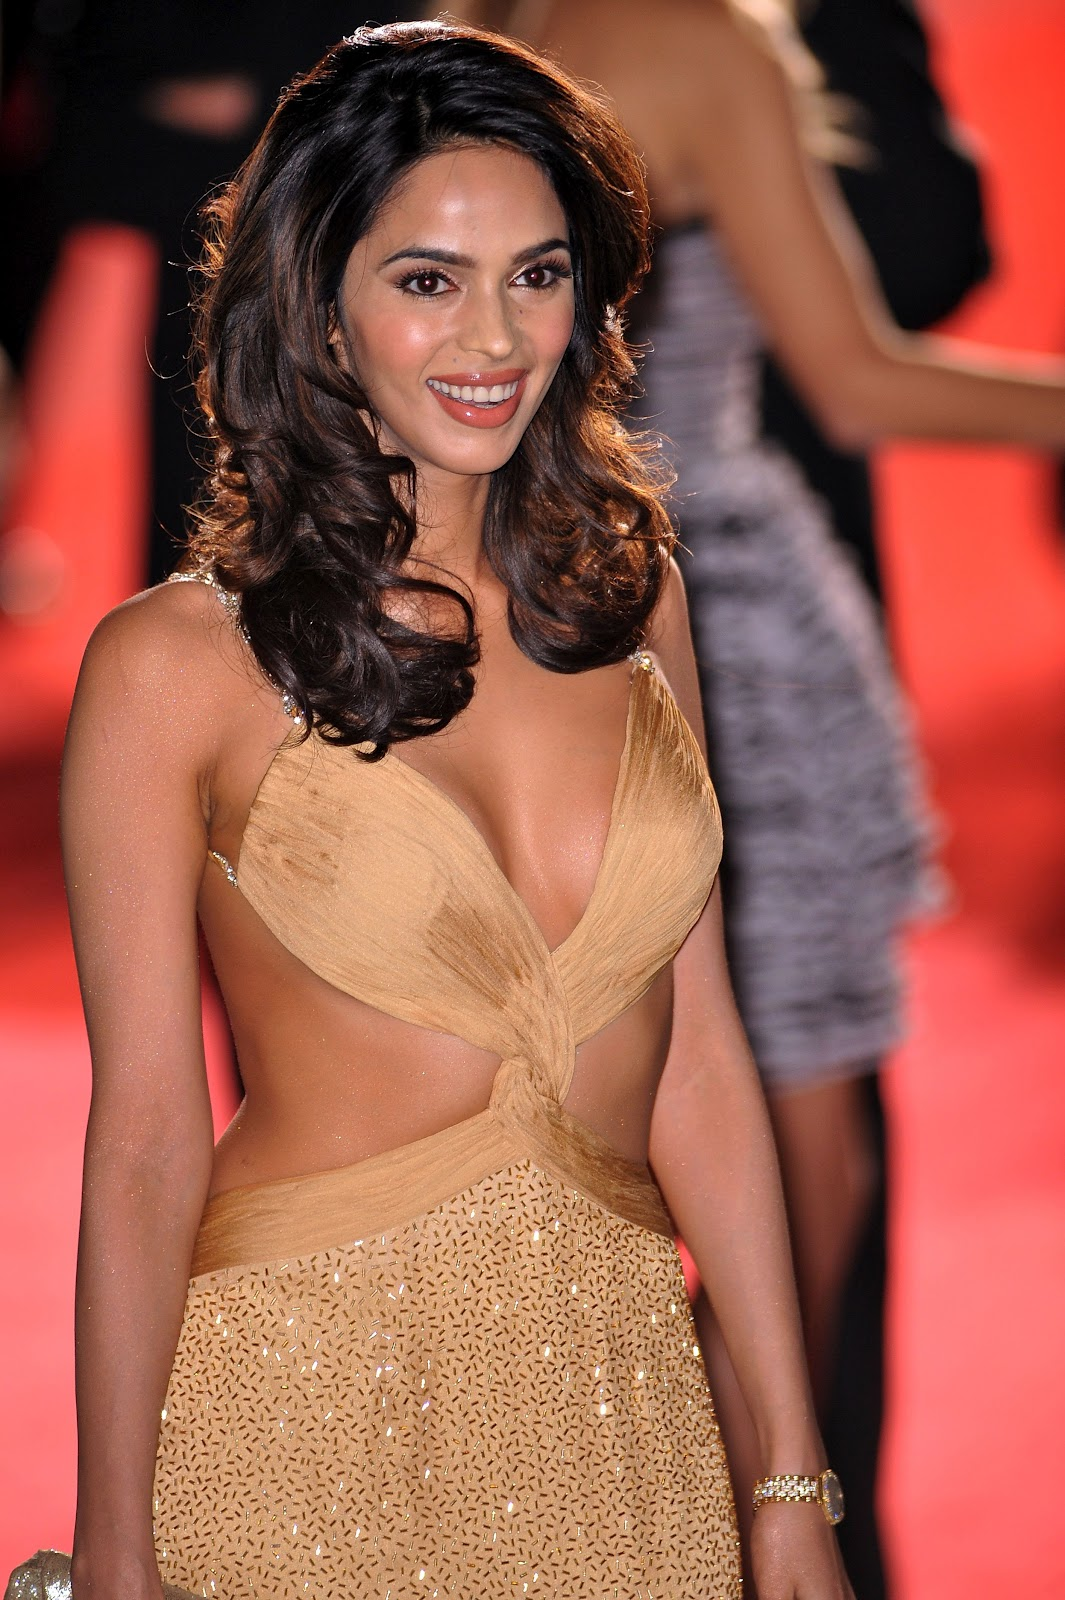 Hot Indian Pussy Mallika Sherawat Hot Photos-4692